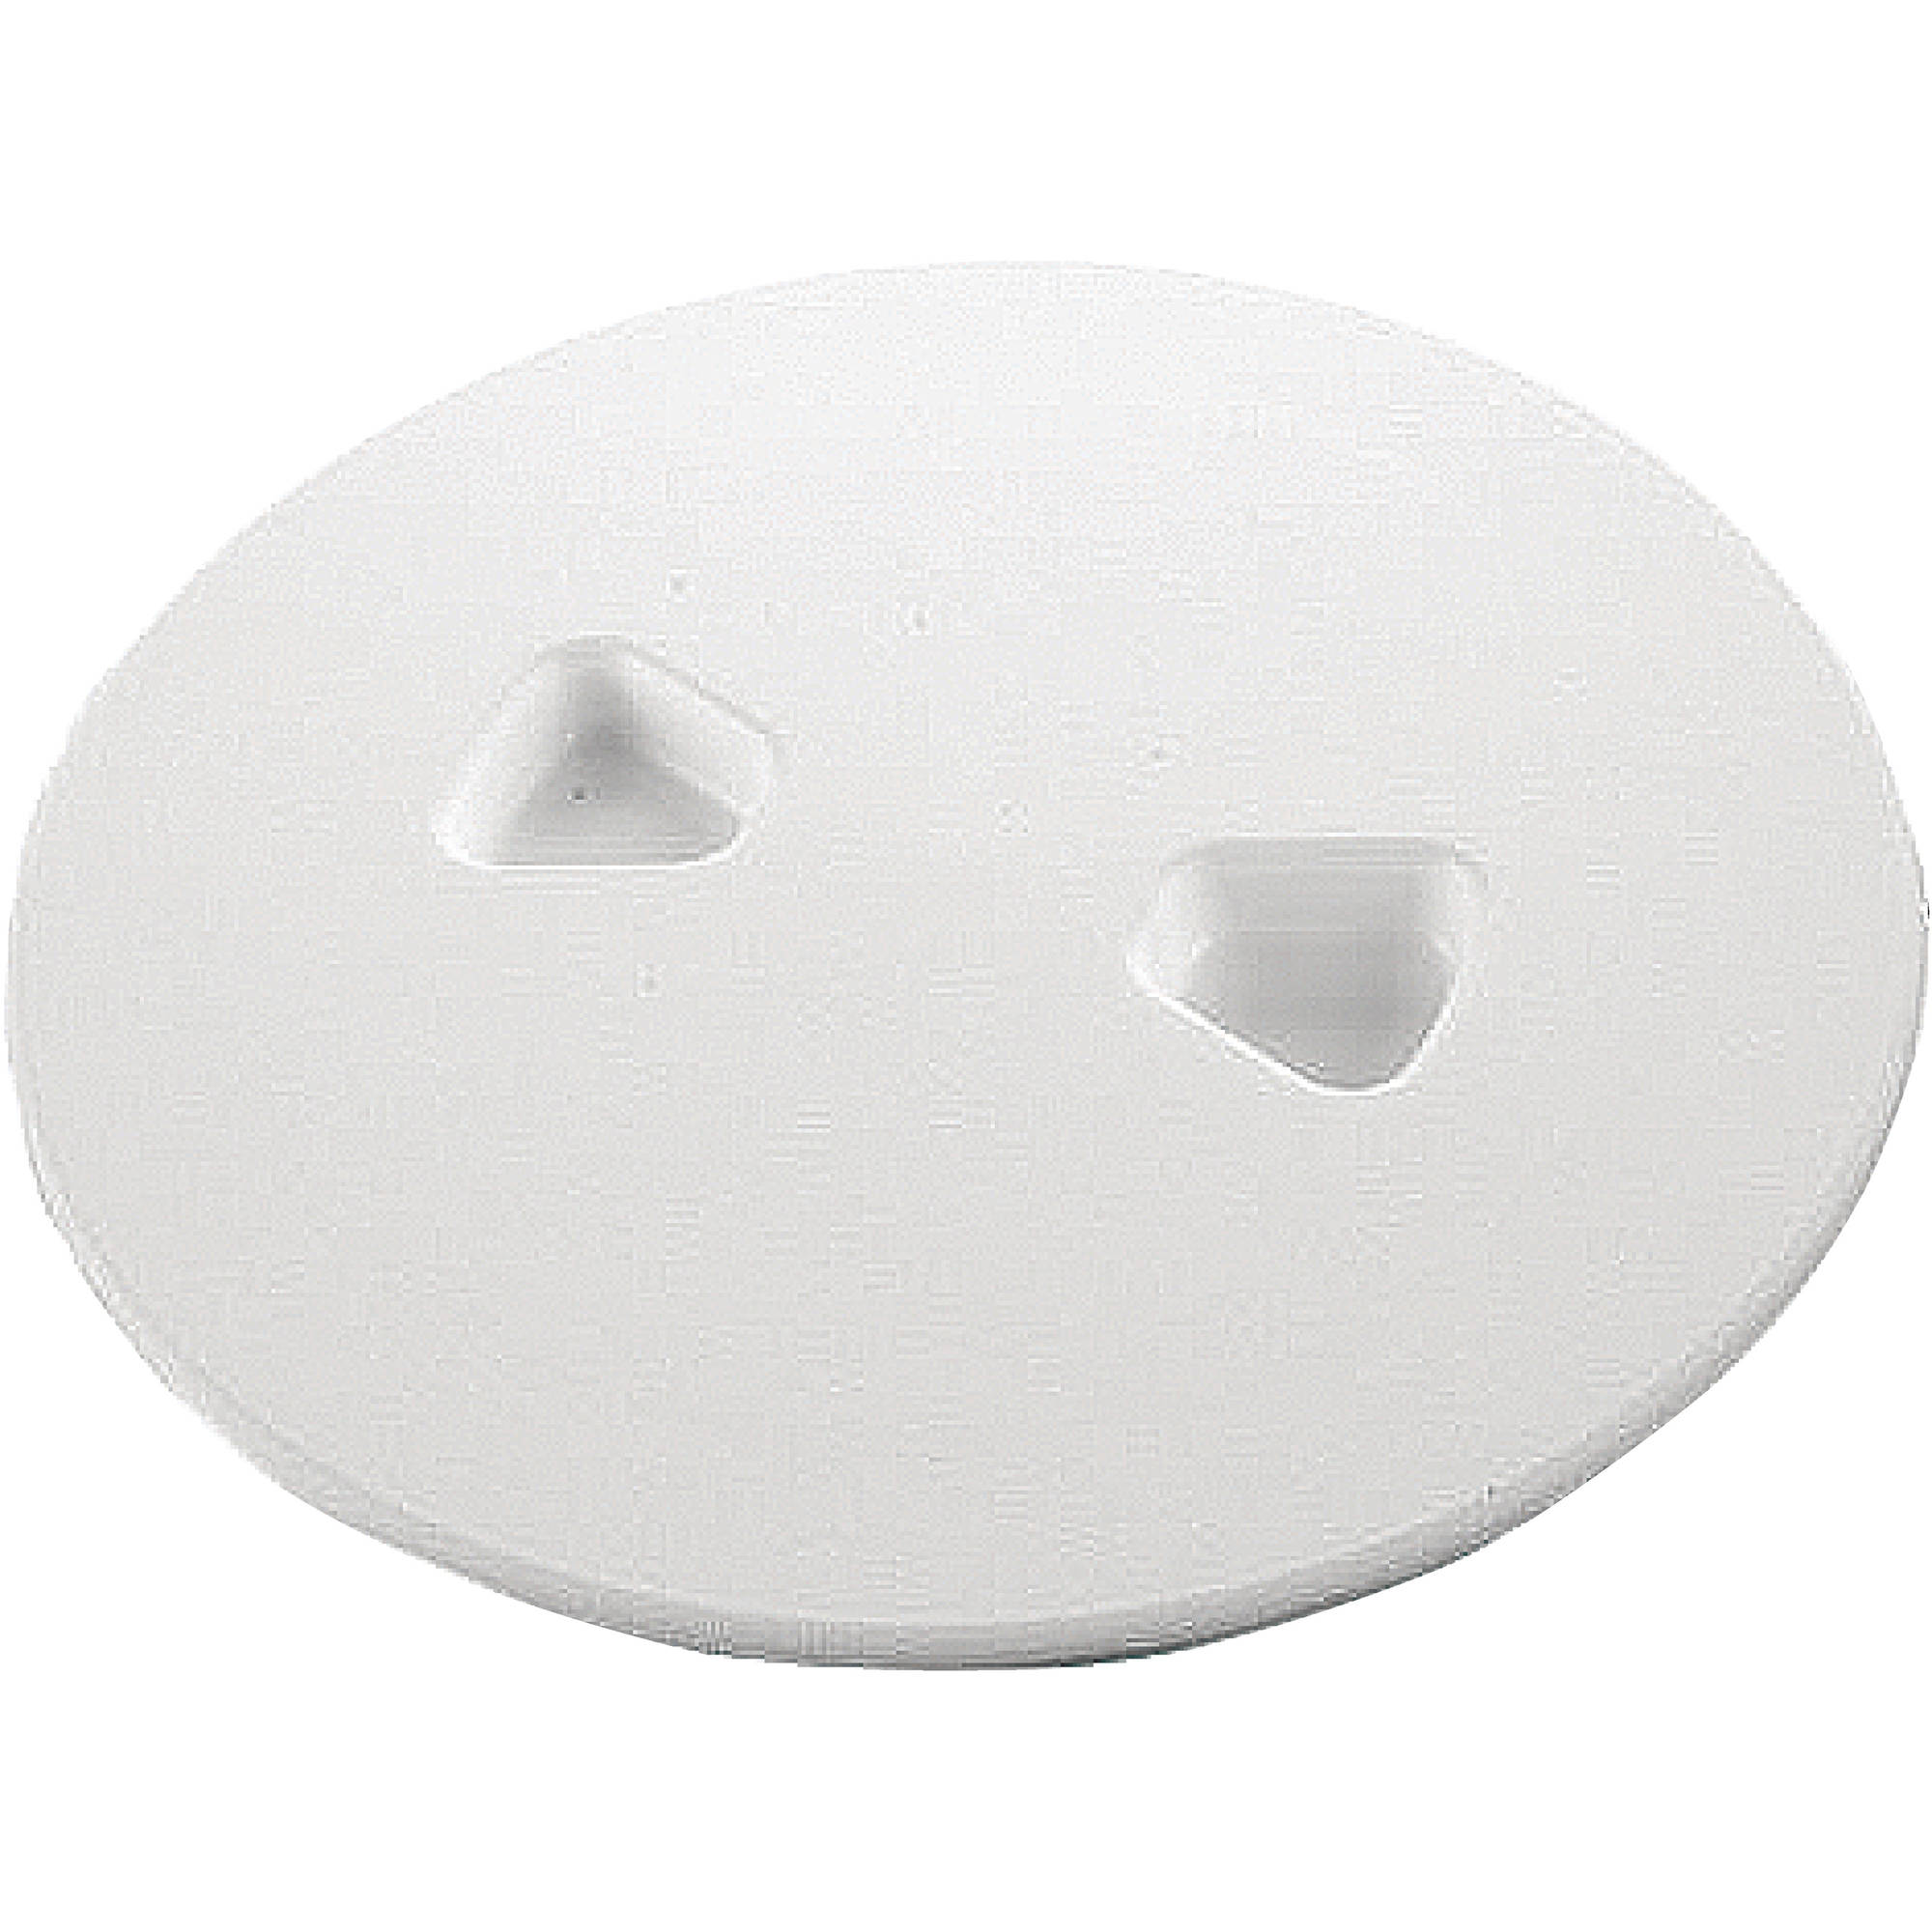 "T-H Marine Sure-Seal Deck Plate, 8"" by T-H Marine Supplies"